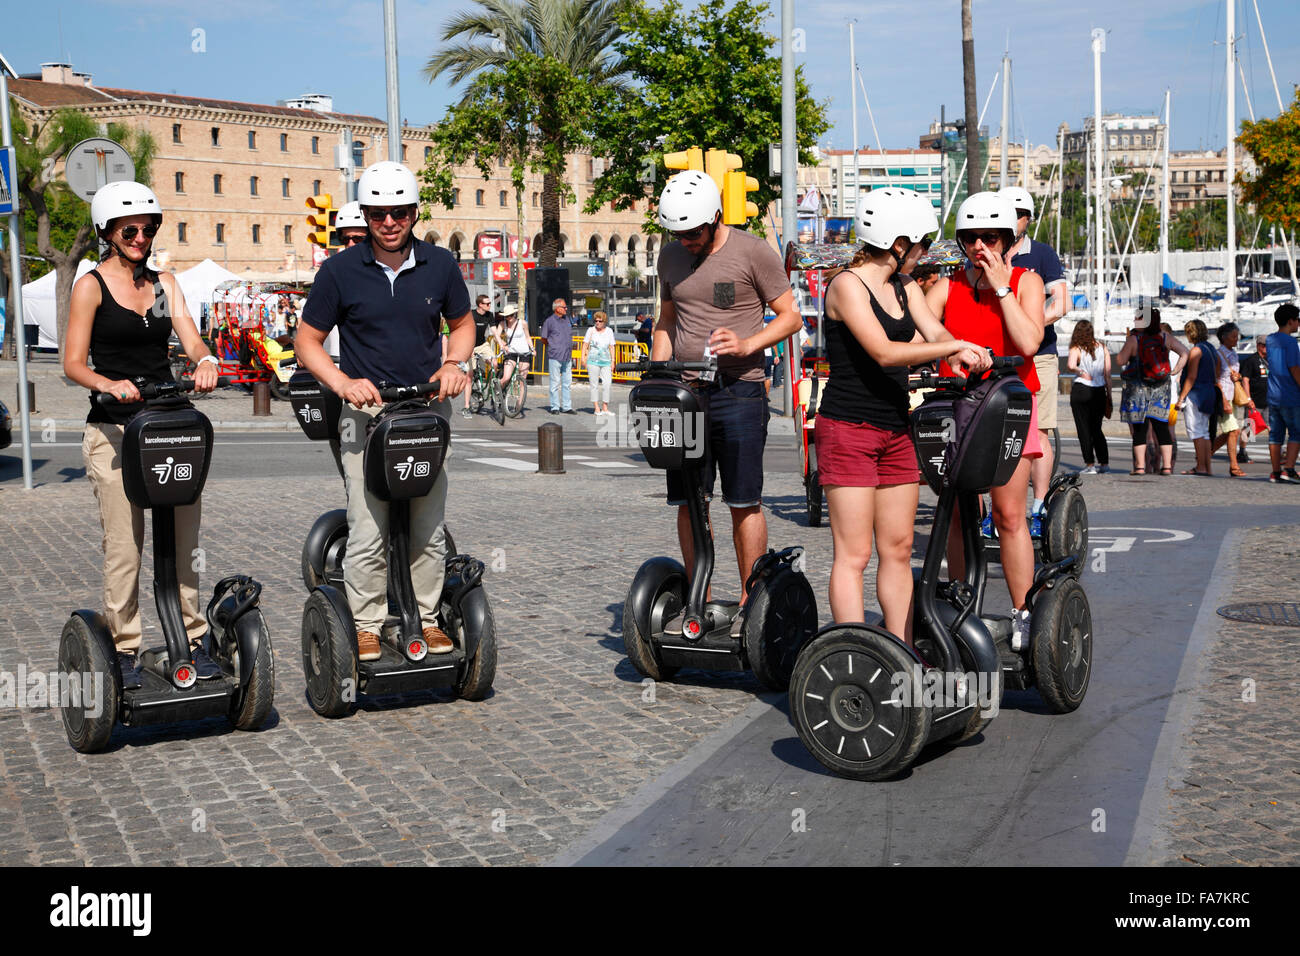 Segway-Tour at the harbor, Barcelona, Spain, Europe - Stock Image